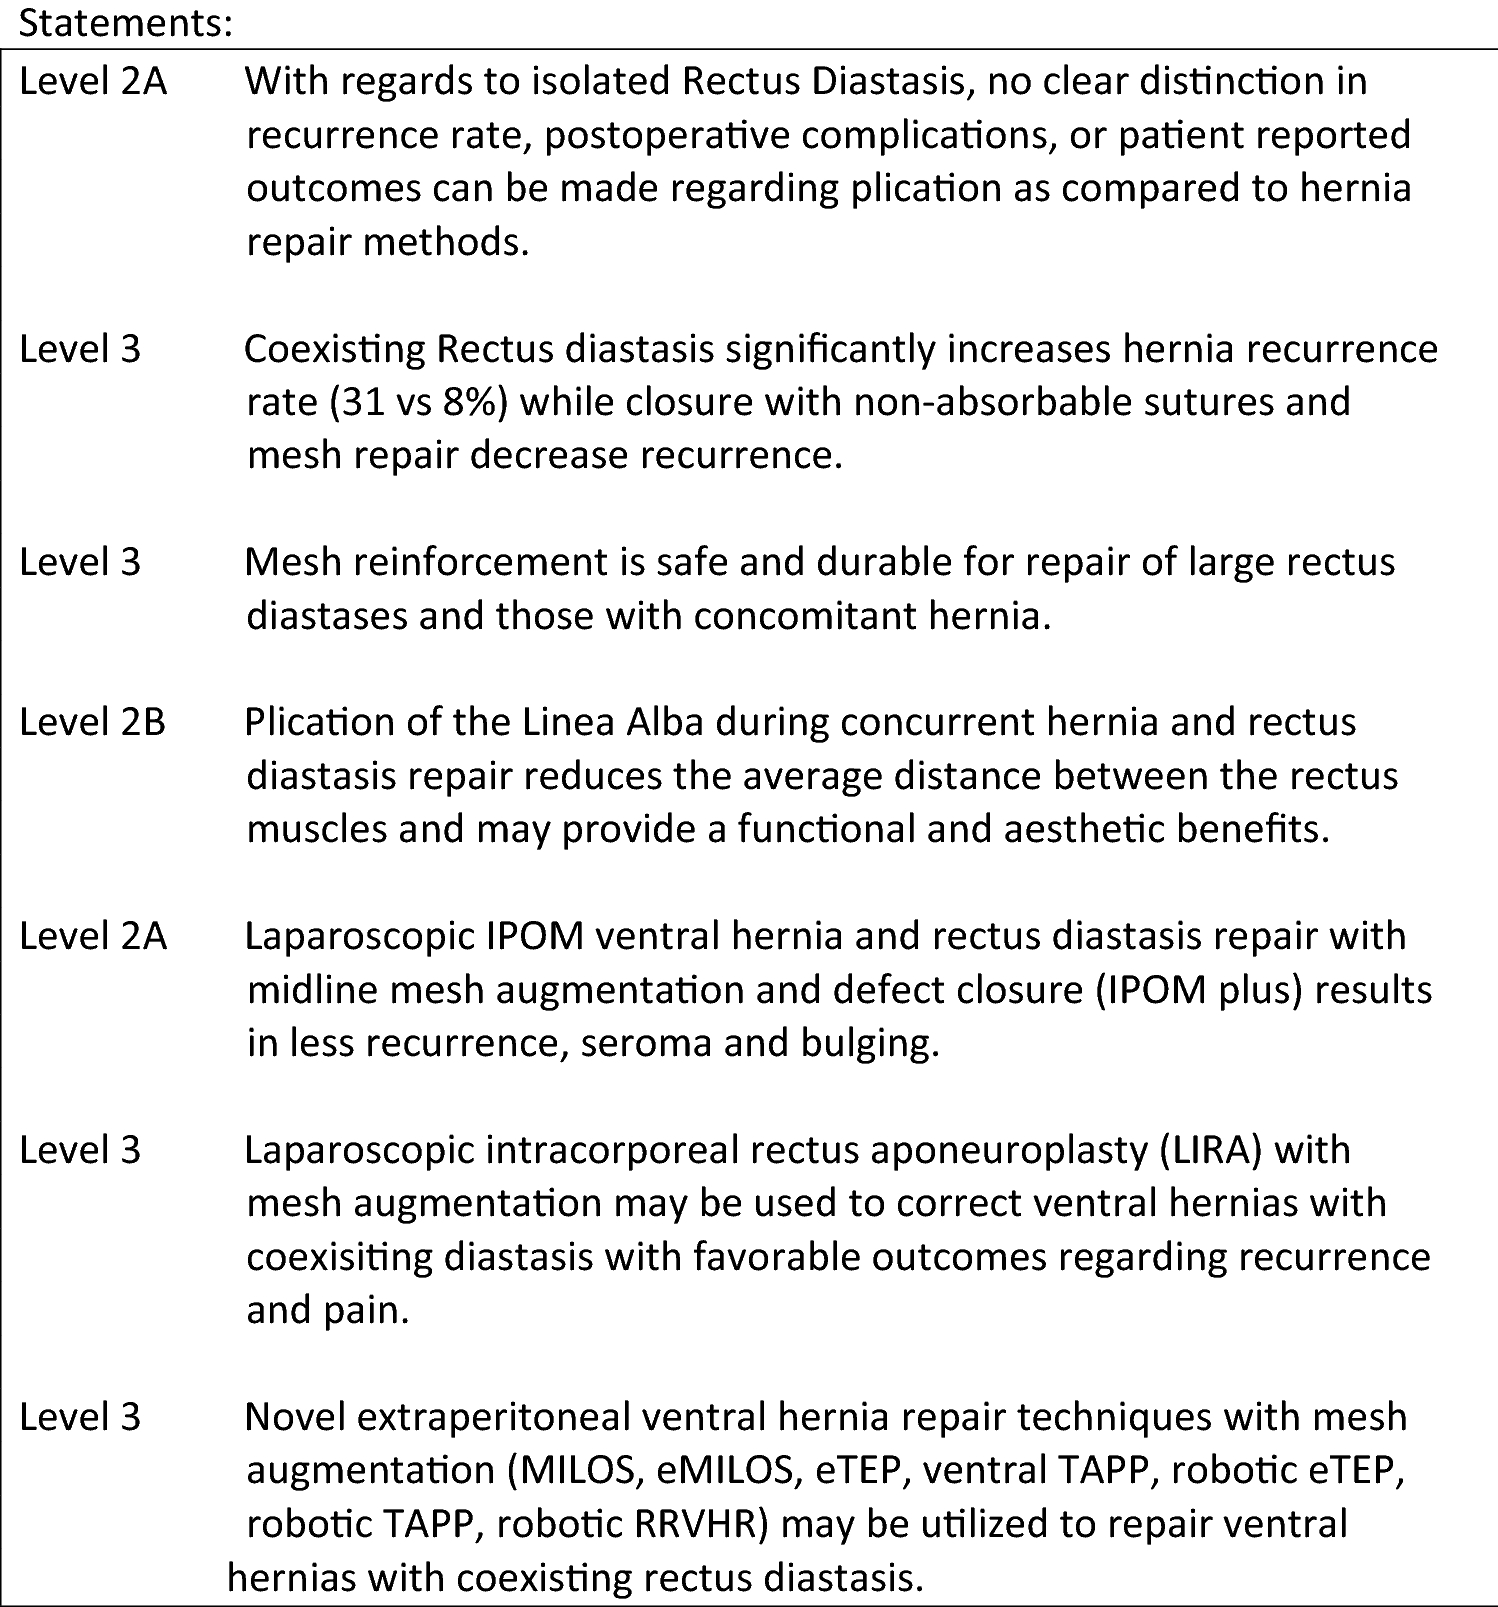 Update of Guidelines for laparoscopic treatment of ventral